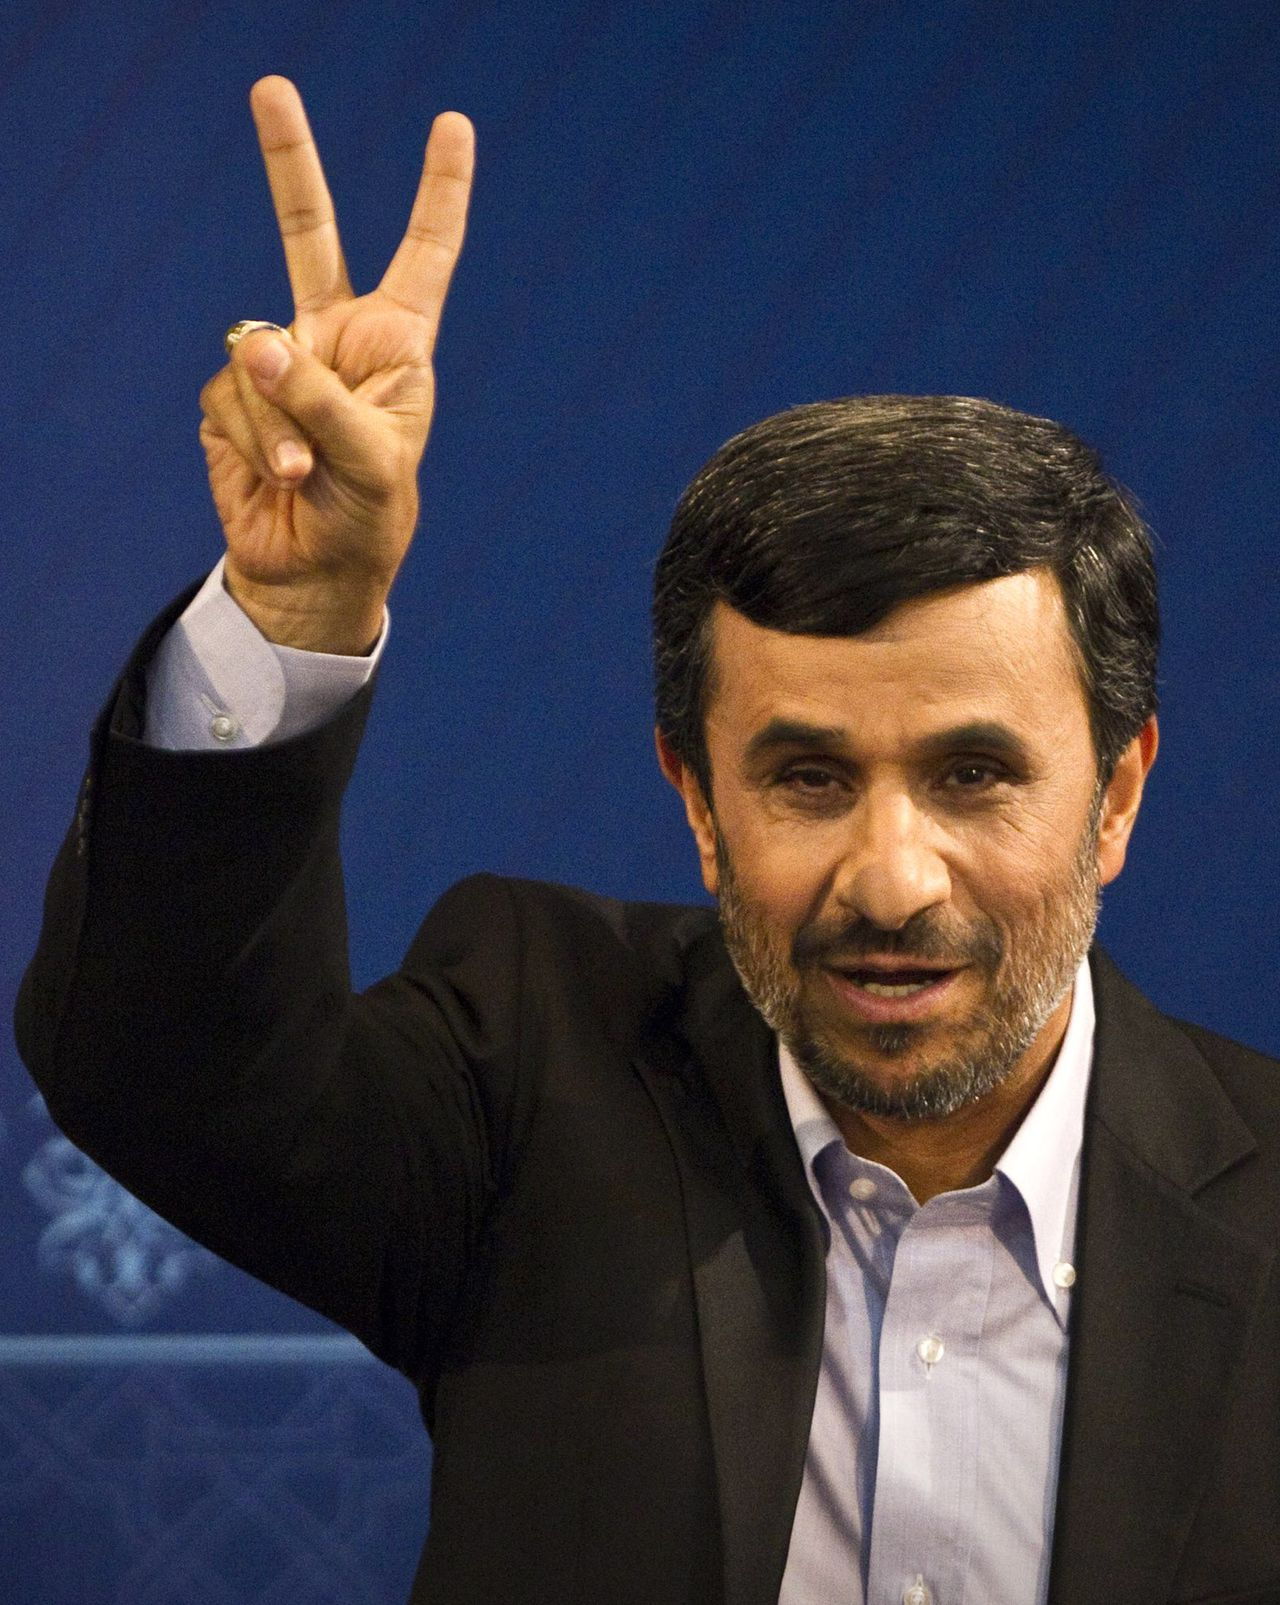 """(FILES) A picture taken on June 7, 2011 shows Iranian President Mahmoud Ahmadinejad flashing the victory sign during a press conference in Tehran. Ahmadinejad condemned the """"killings and massacre"""" in Syria in an interview with CNN on October 22, 2011, in Iran's strongest criticism yet of its key ally's deadly seven-month-old crackdown on dissent. AFP PHOTO/BEHROUZ MEHRI"""